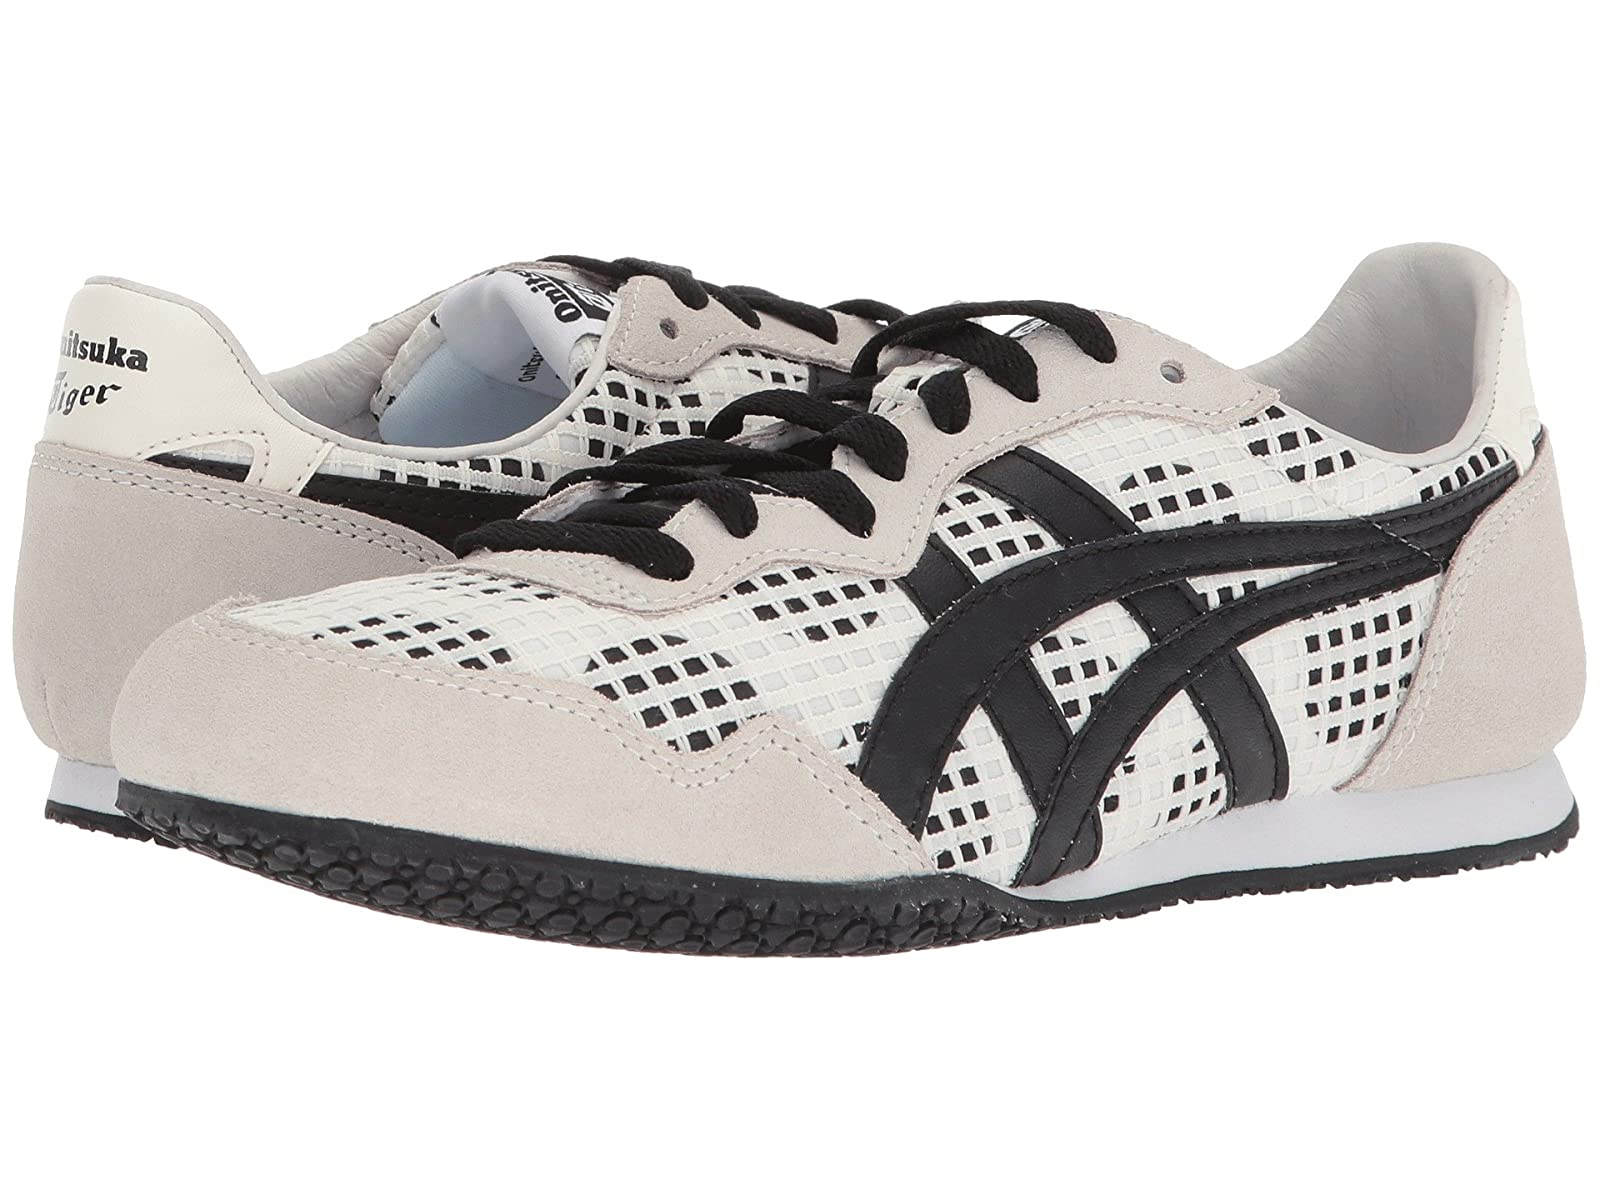 Onitsuka Tiger by Asics SerranoAtmospheric grades have affordable shoes